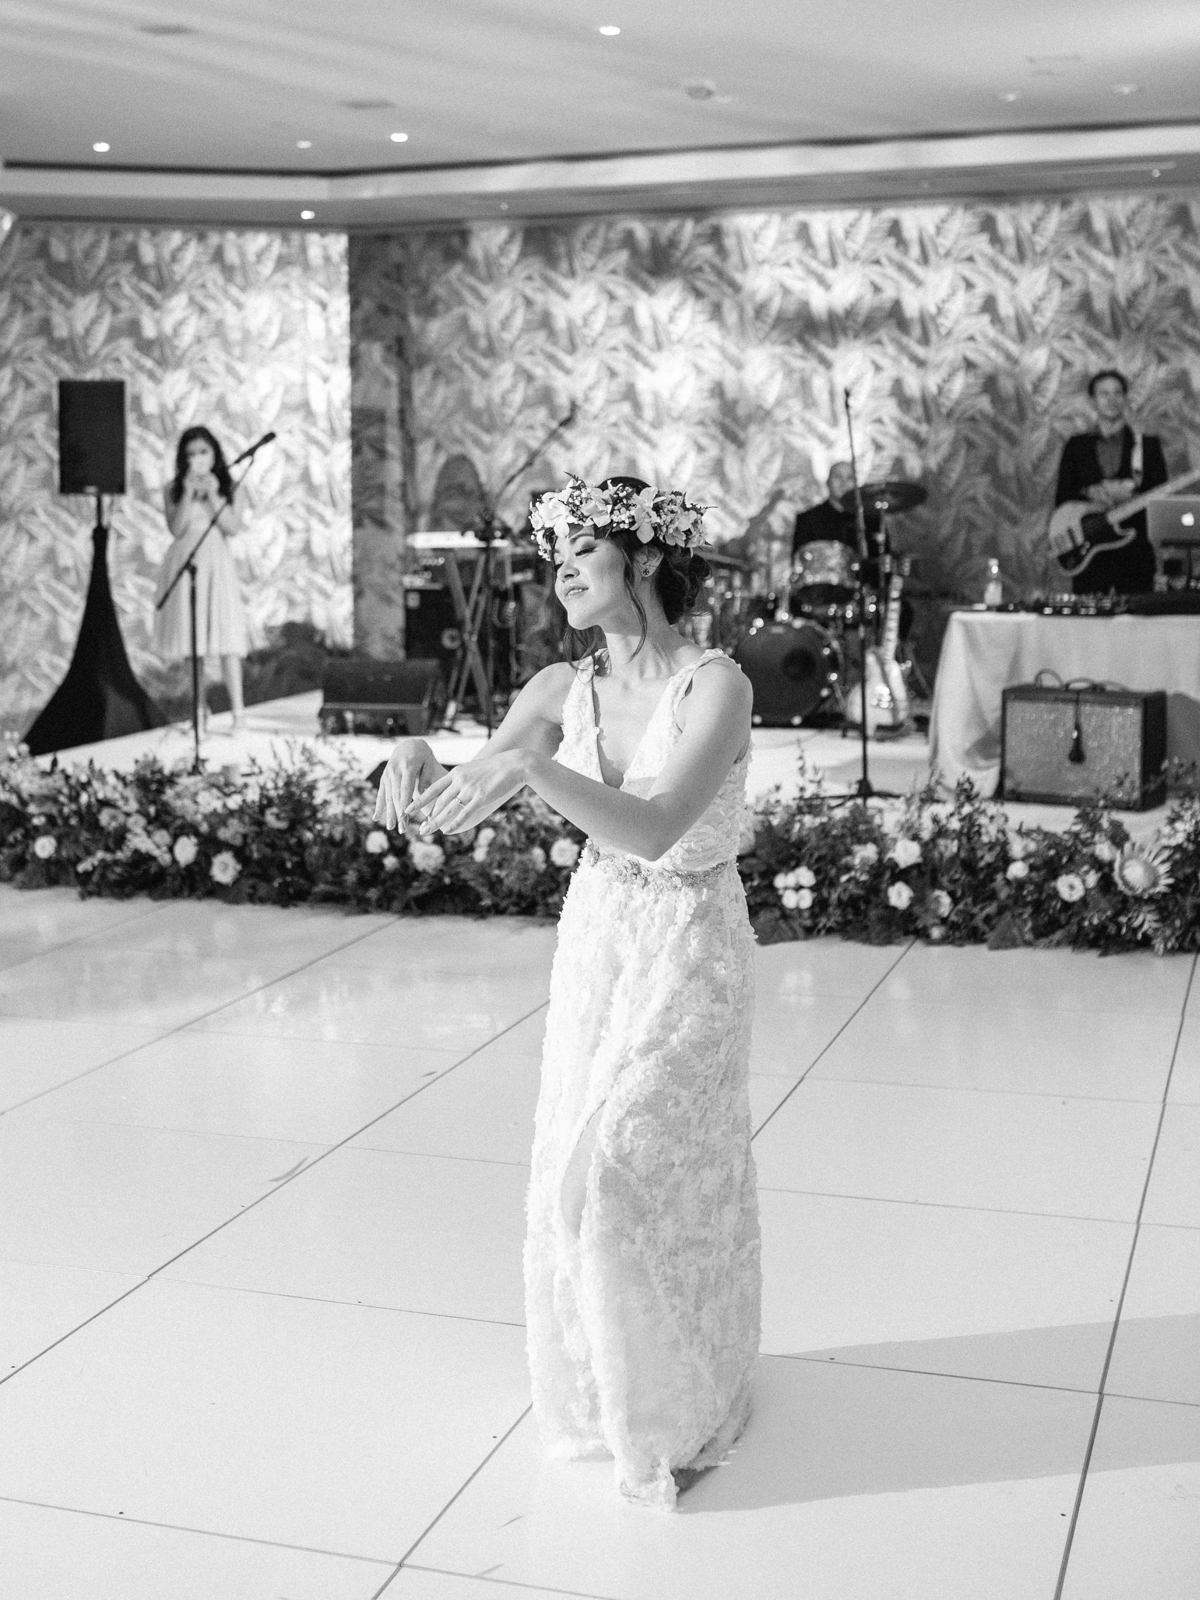 bride hula dancing at wedding reception in second dress